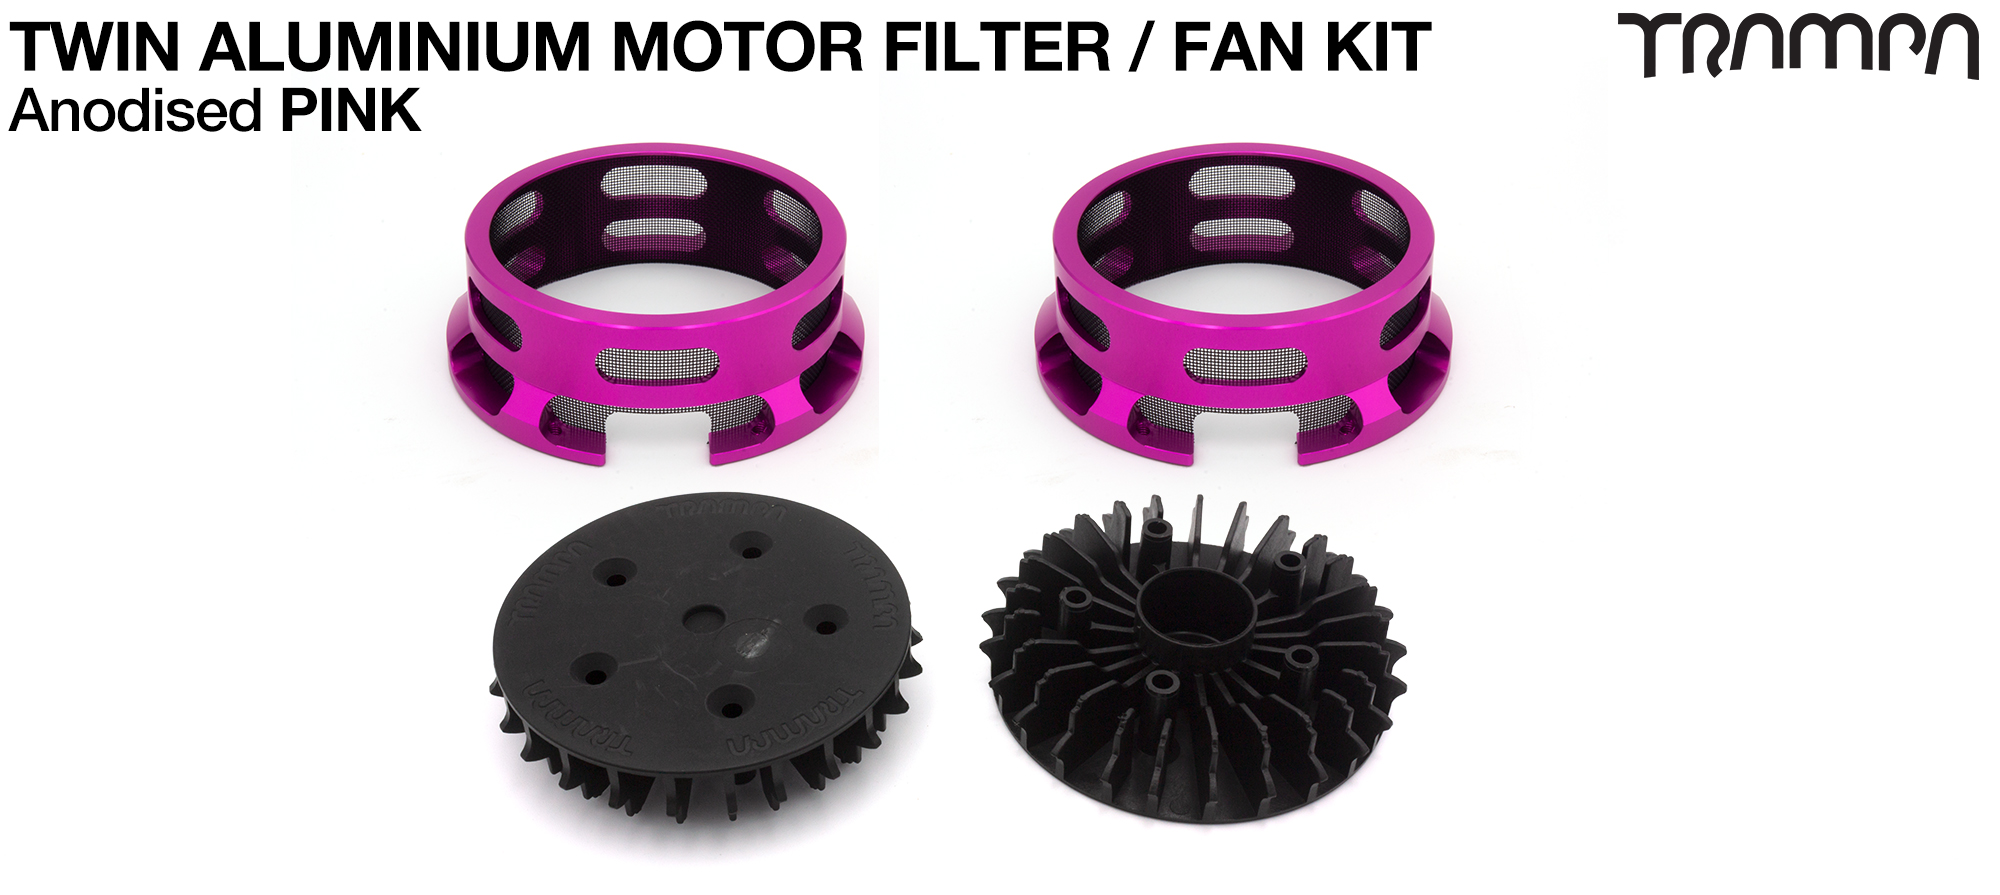 14FiFties BLACK Motor protection Housing with PINK particle Filter & Fan - TWIN